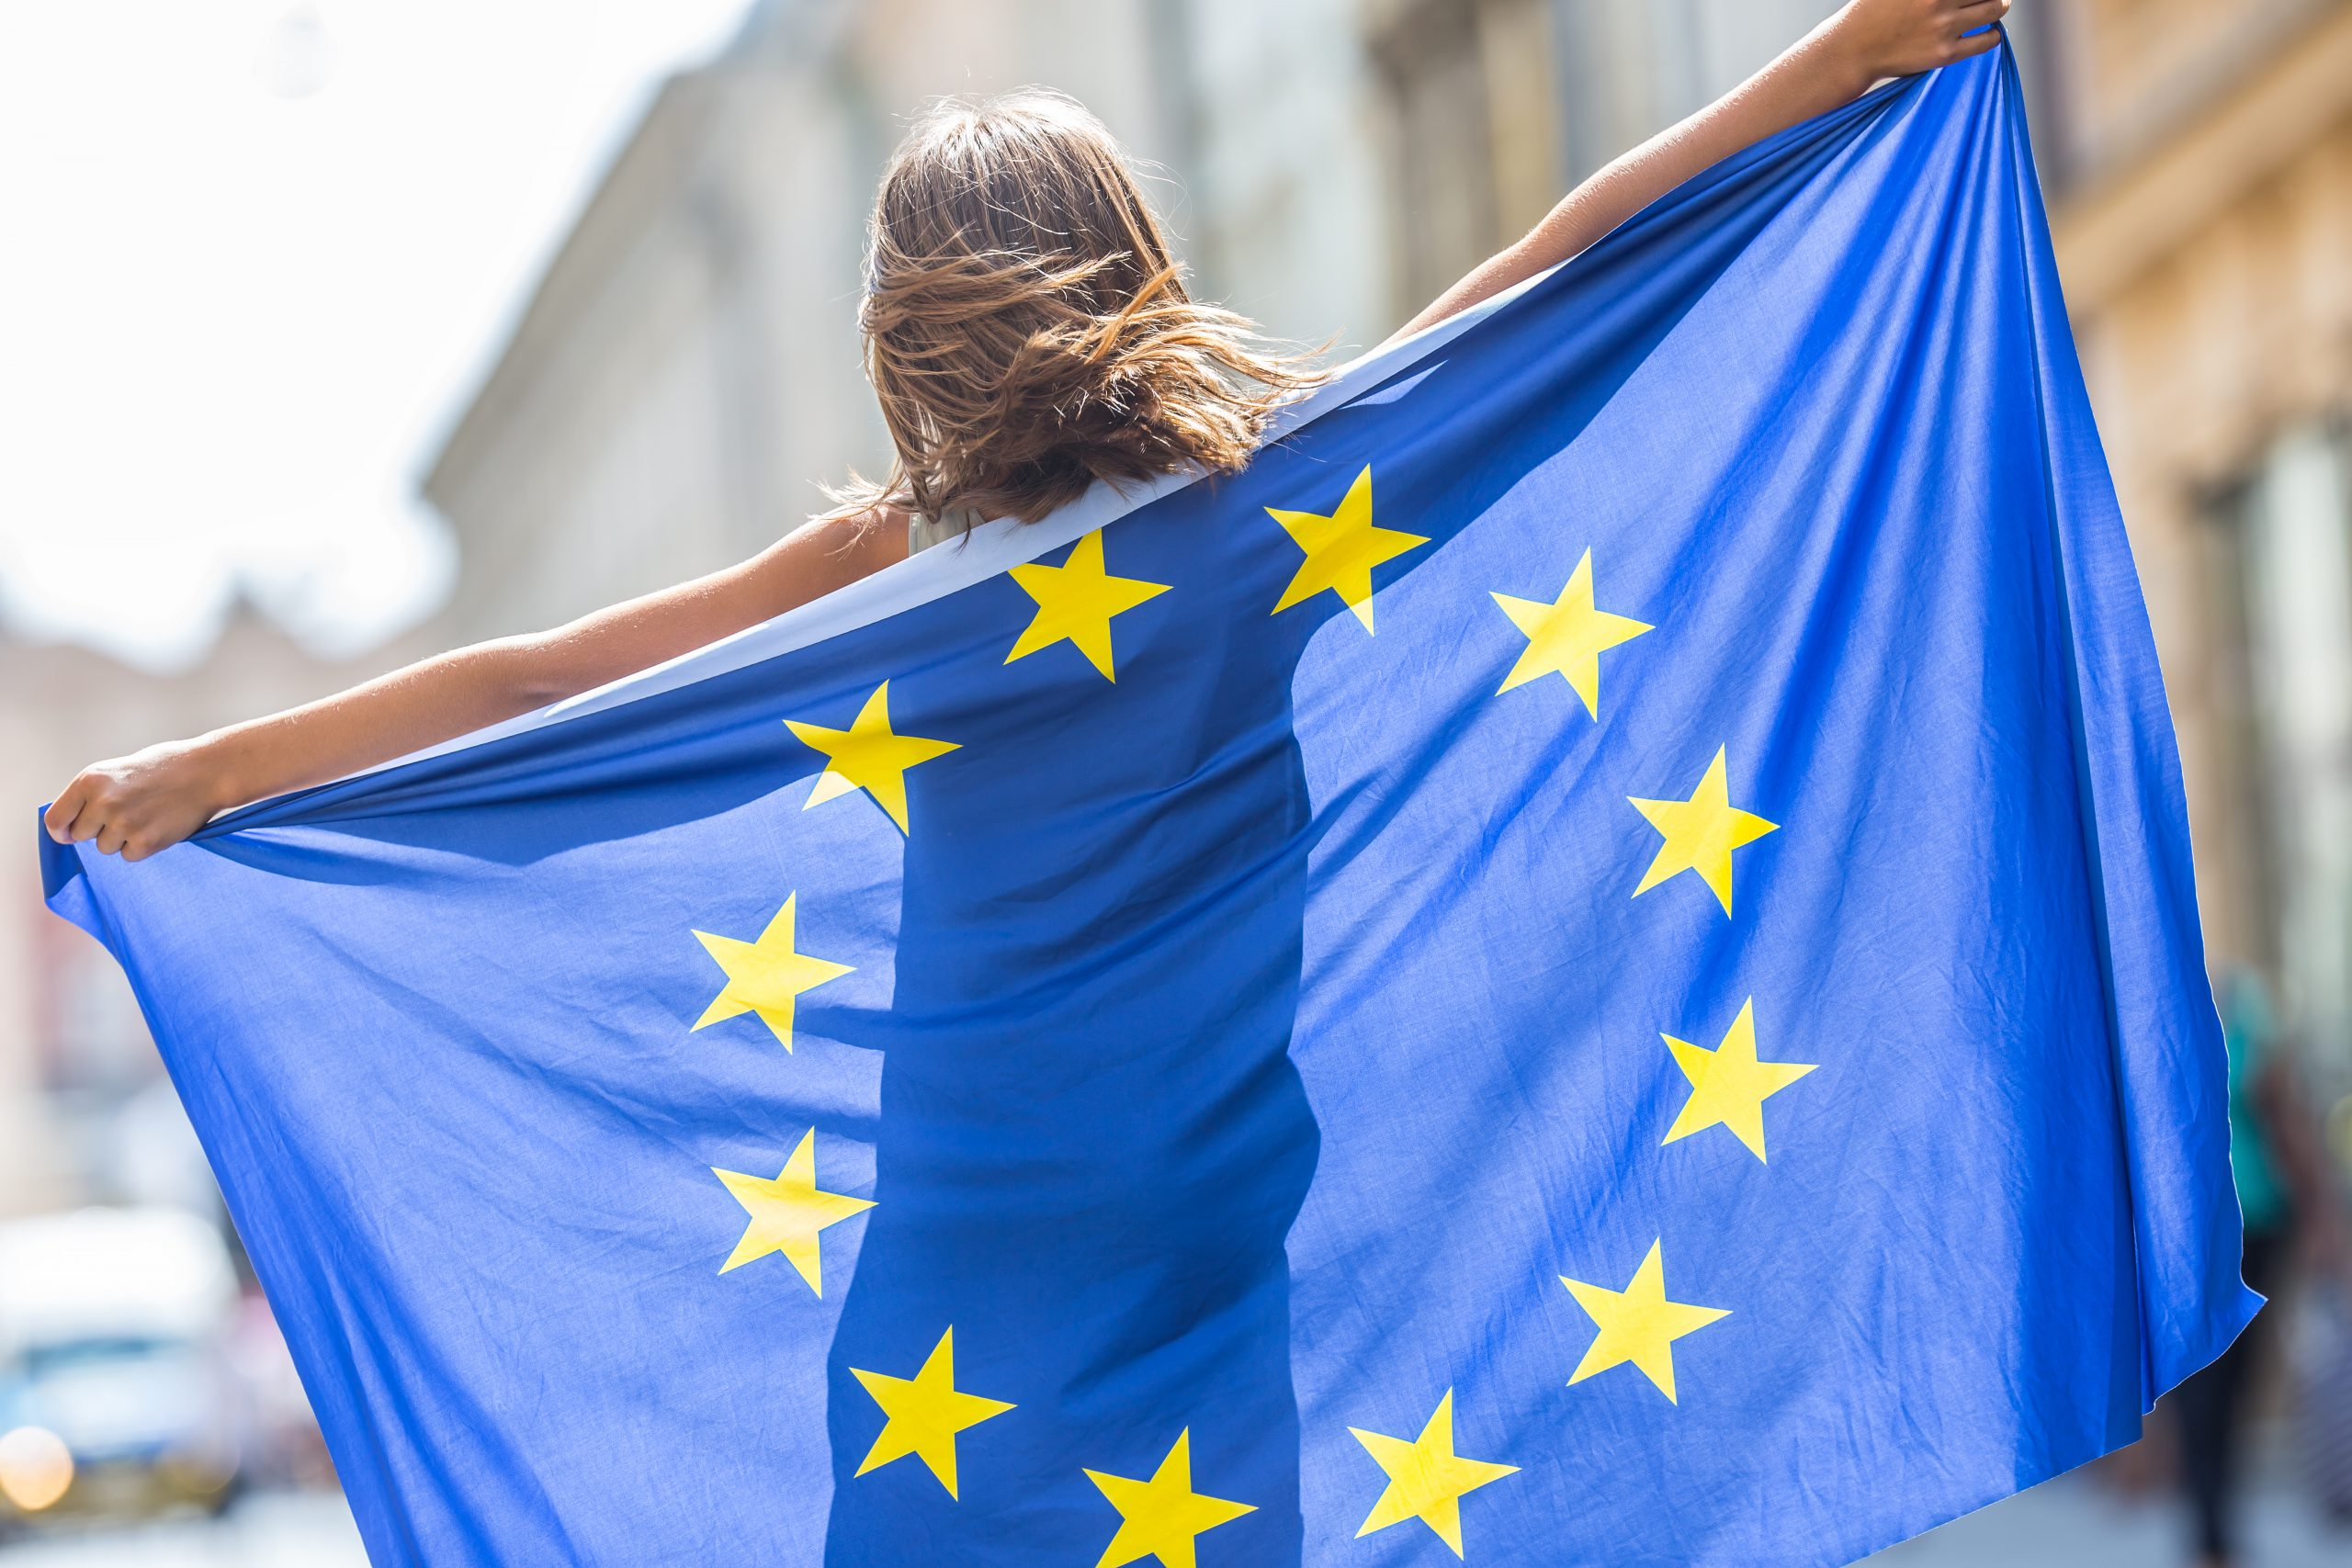 The most important question expats in Europe need to know the answer to